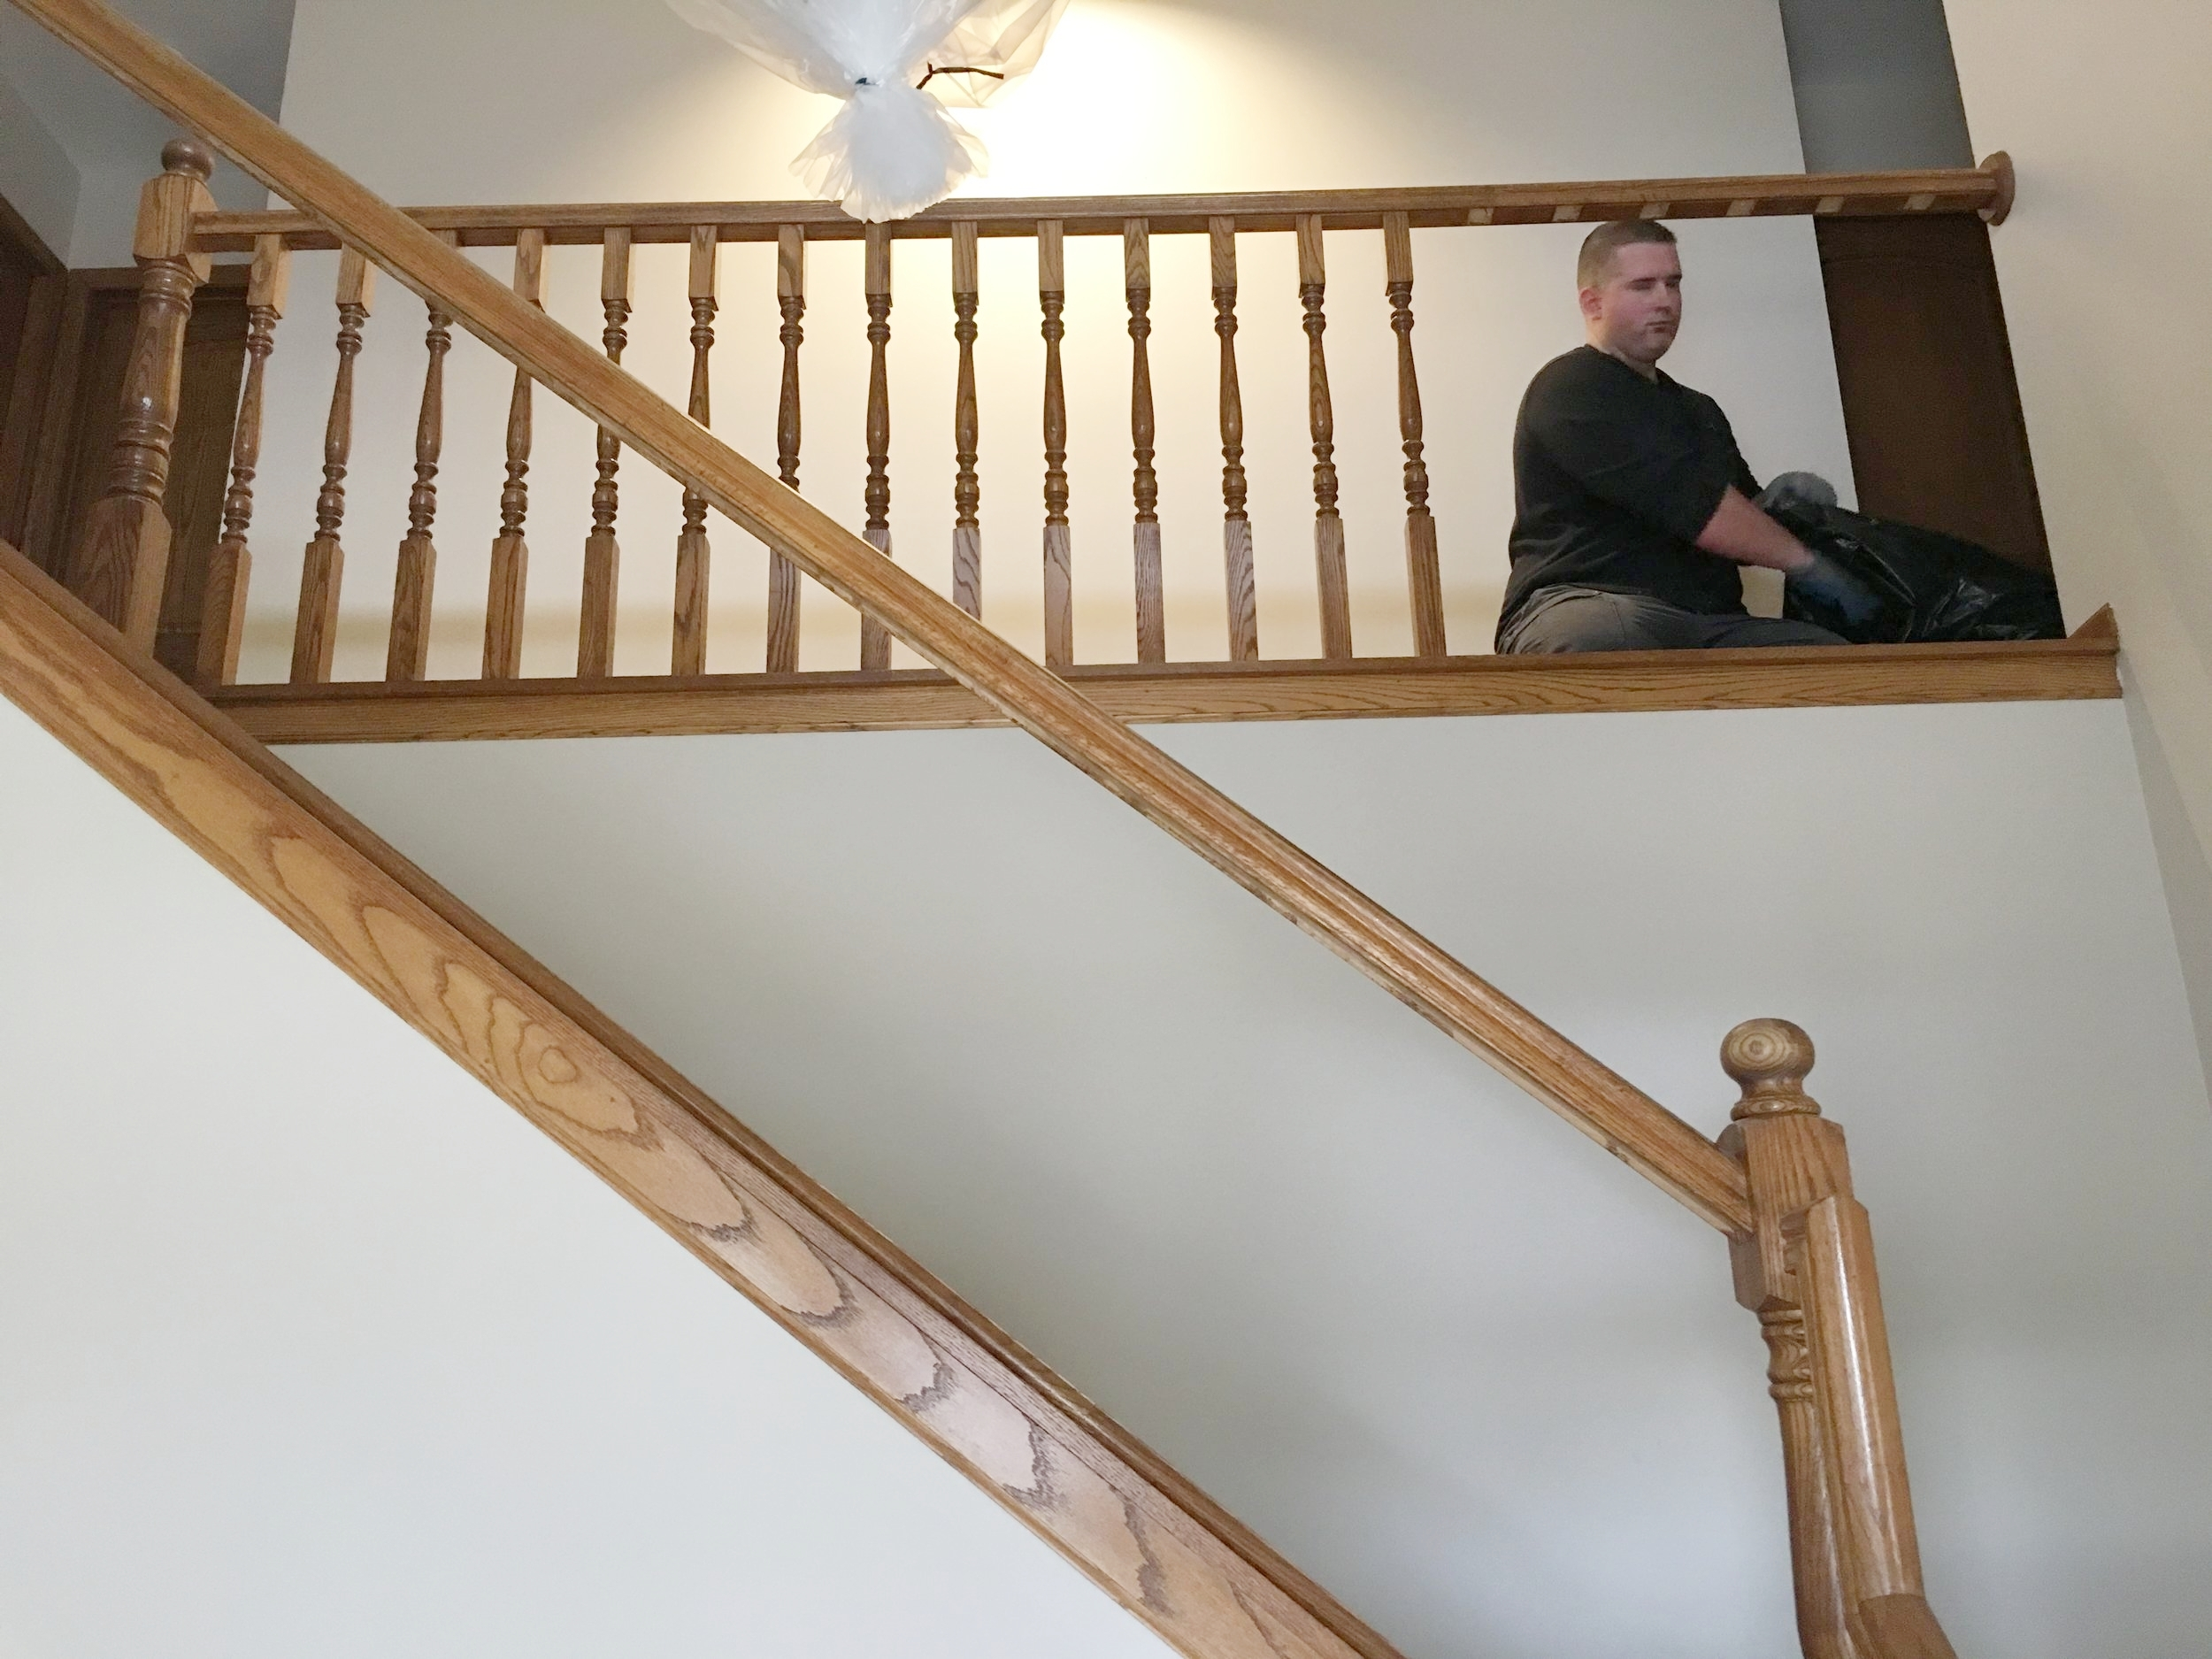 How To Give Your Spindles A Contemporary Facelift — Trubuild | Replacing Wood Spindles With Metal | Stair Spindles | Iron Stair Balusters | Stair Parts | Stair Railing | Staircase